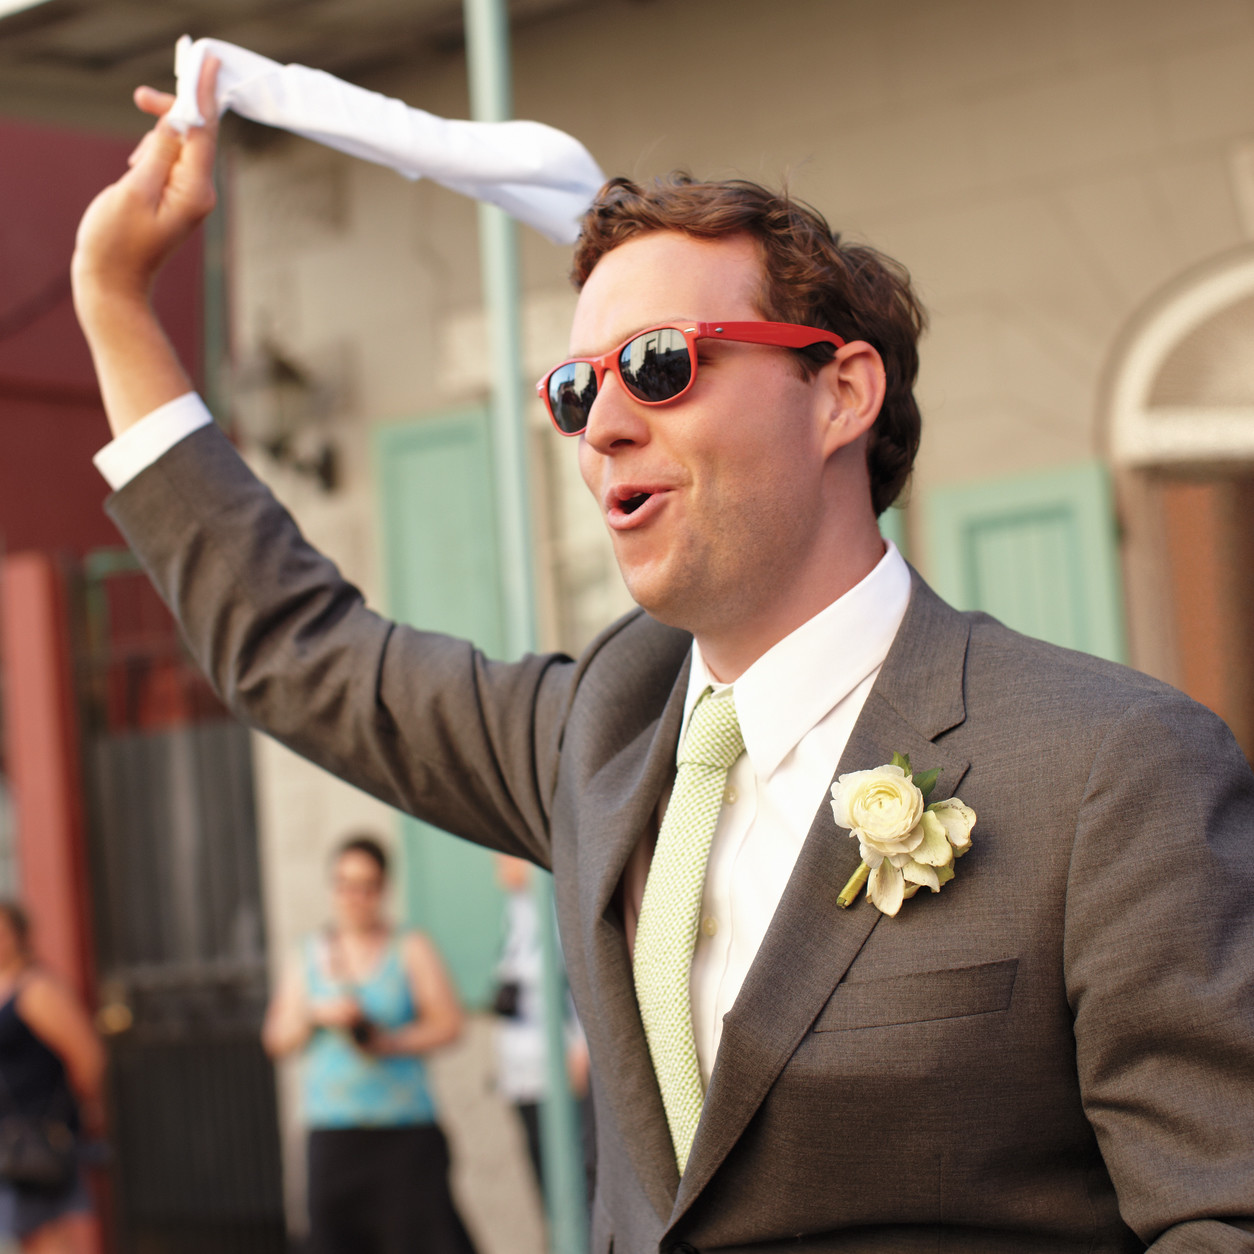 15 Wedding Guest Dos and Don'ts